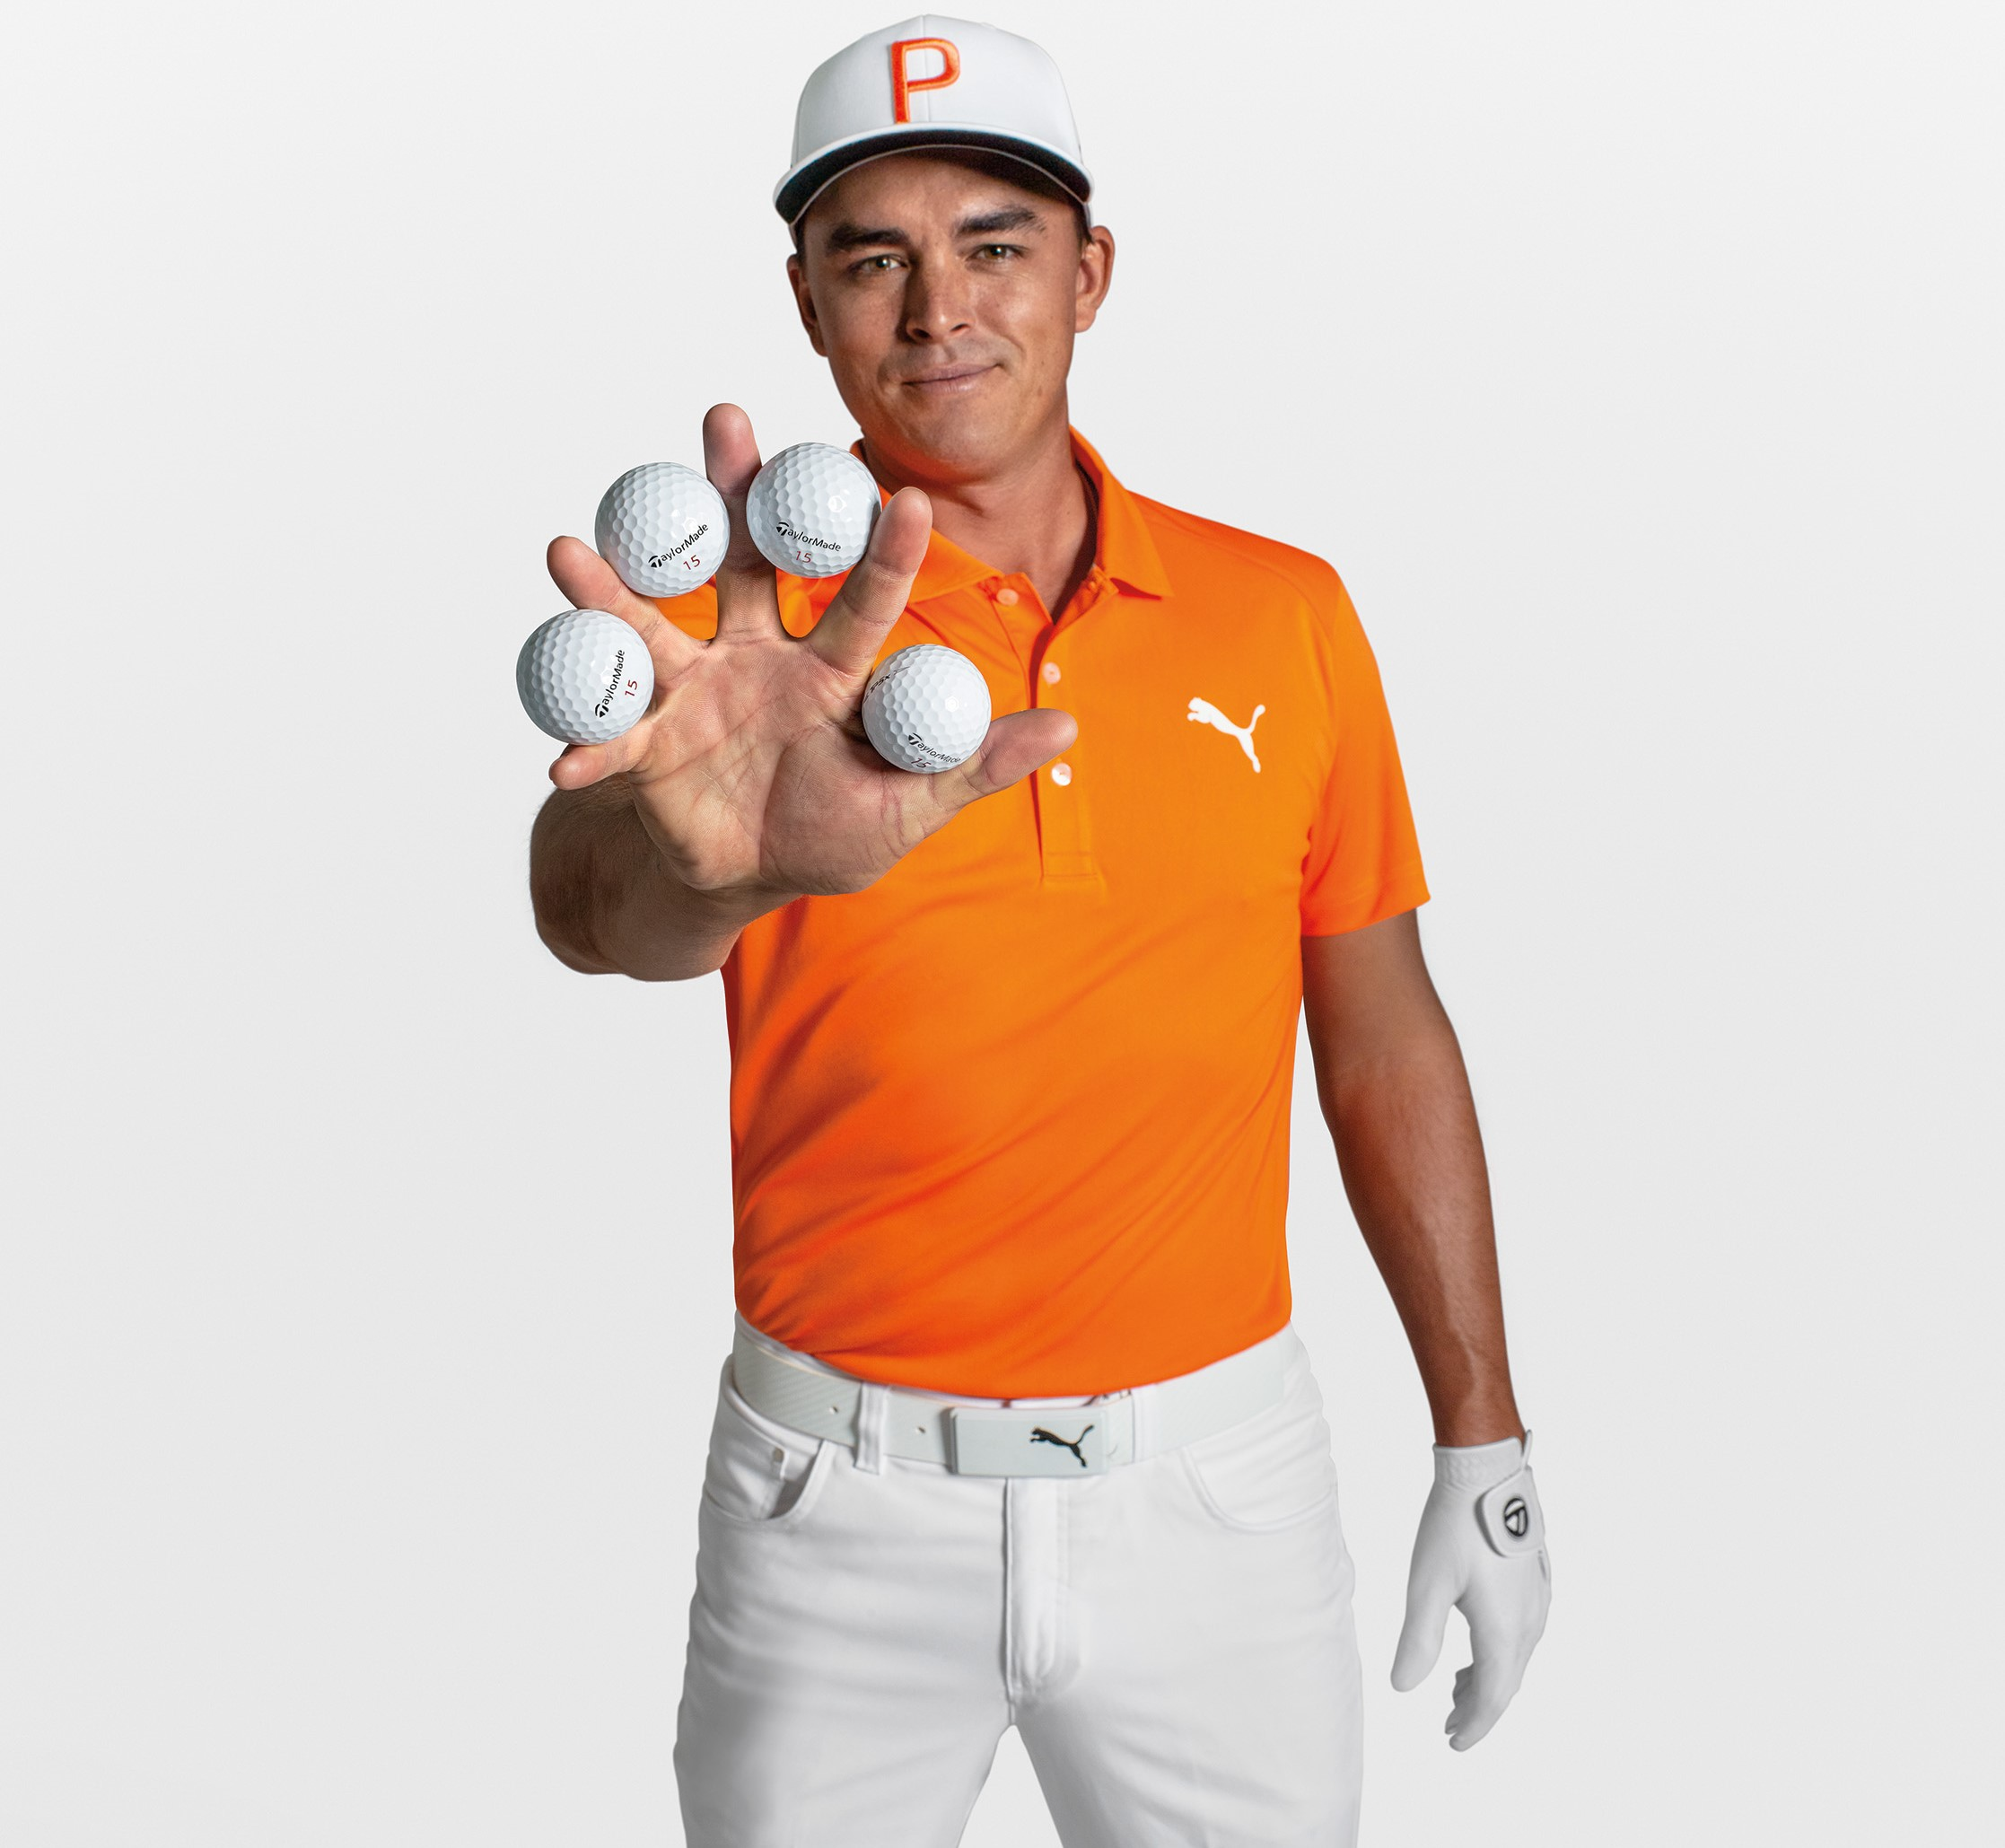 PUMA Golf signs with Gary Woodland